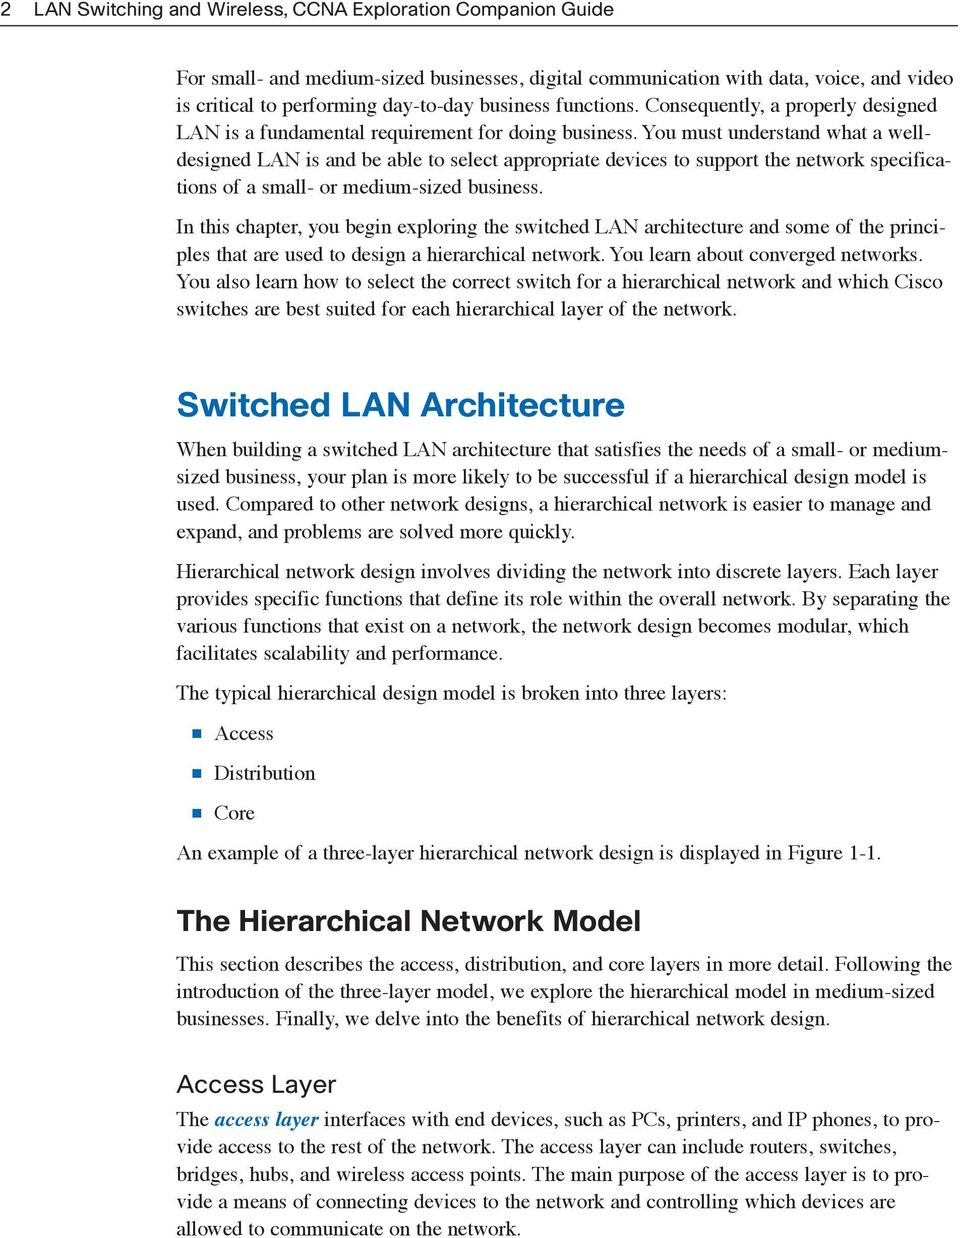 You must understand what a welldesigned LAN is and be able to select appropriate devices to support the network specifications of a small- or medium-sized business.